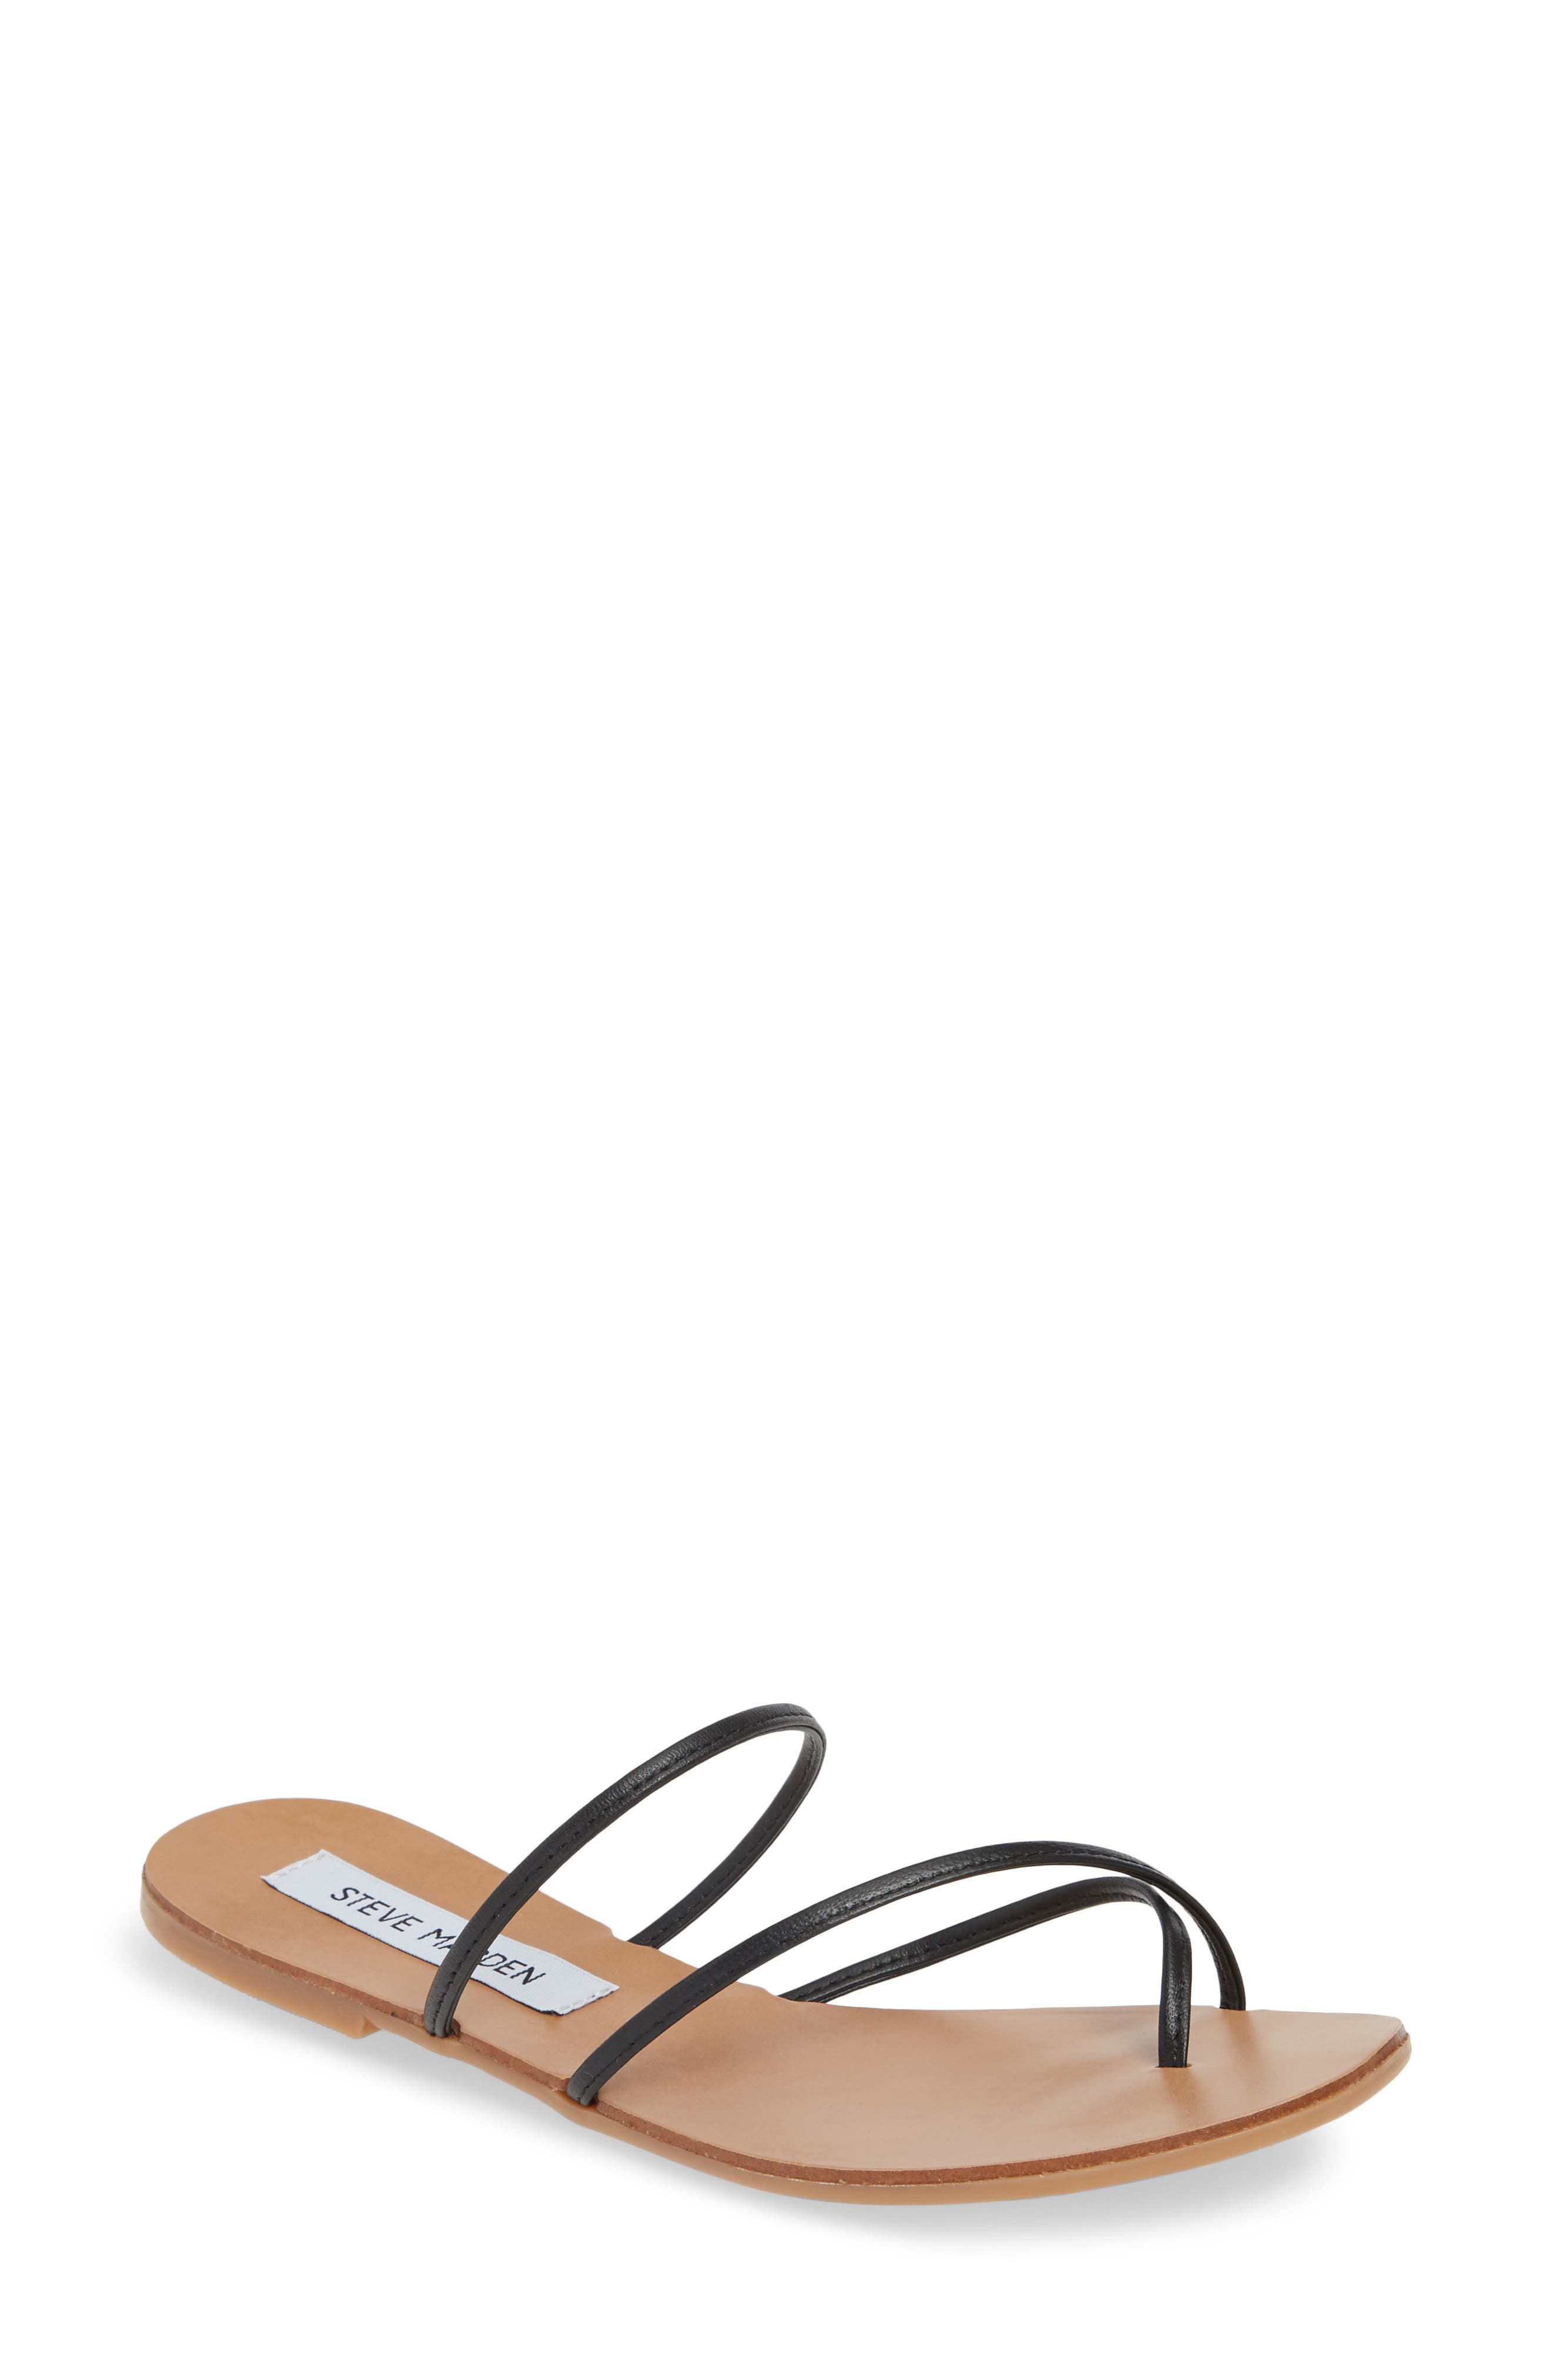 Wise Strappy Slide Sandal, Main, color, BLACK